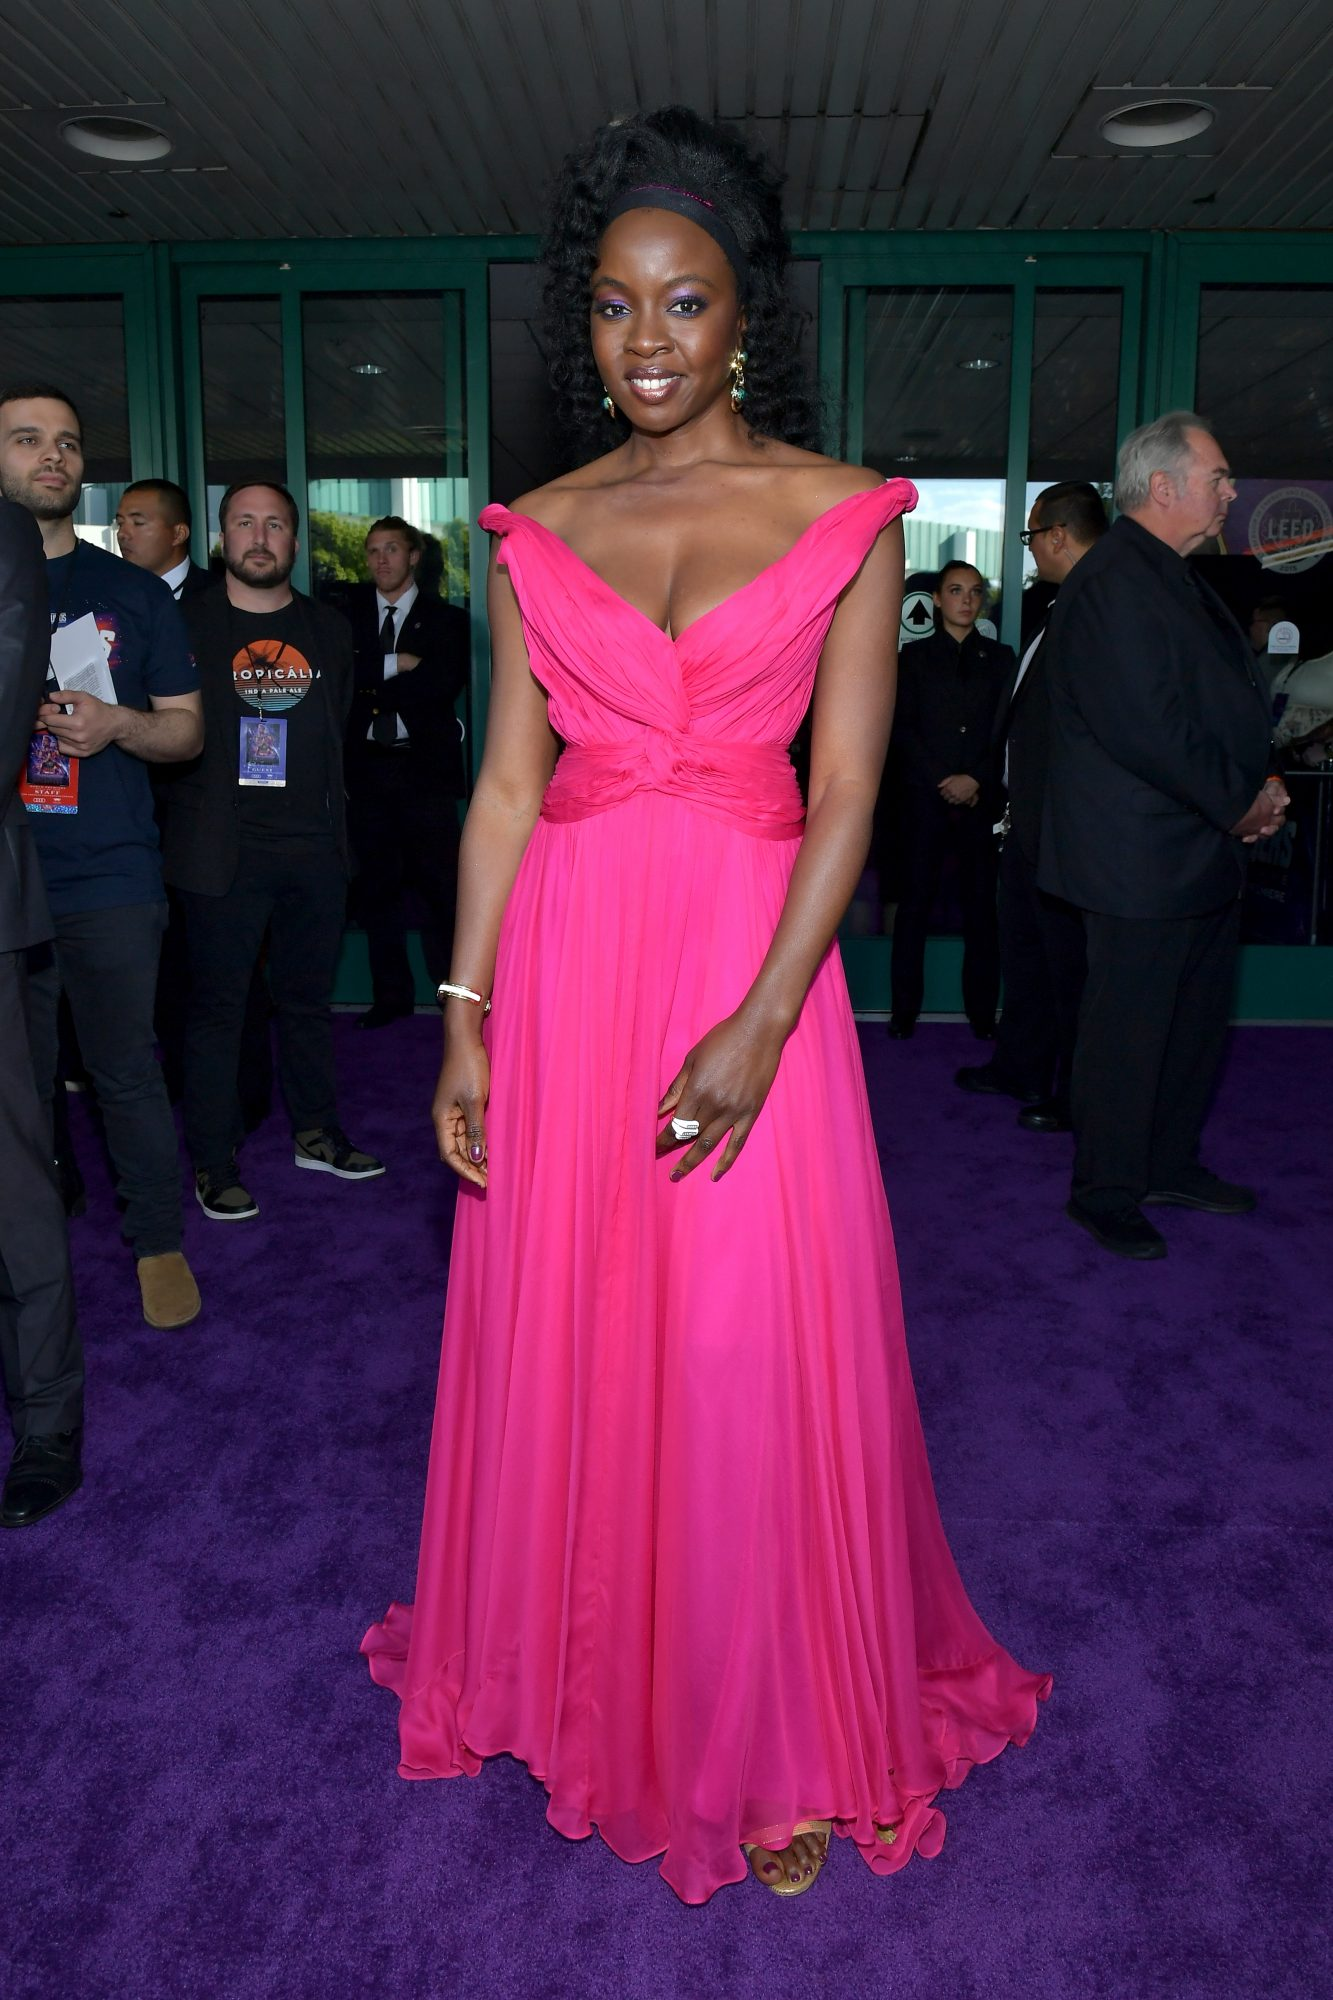 """Danai Gurira attends the world premiere of Walt Disney Studios Motion Pictures """"Avengers: Endgame"""" at the Los Angeles Convention Center on April 22, 2019 in Los Angeles, California.  (Photo by Amy Sussman/Getty Images)"""